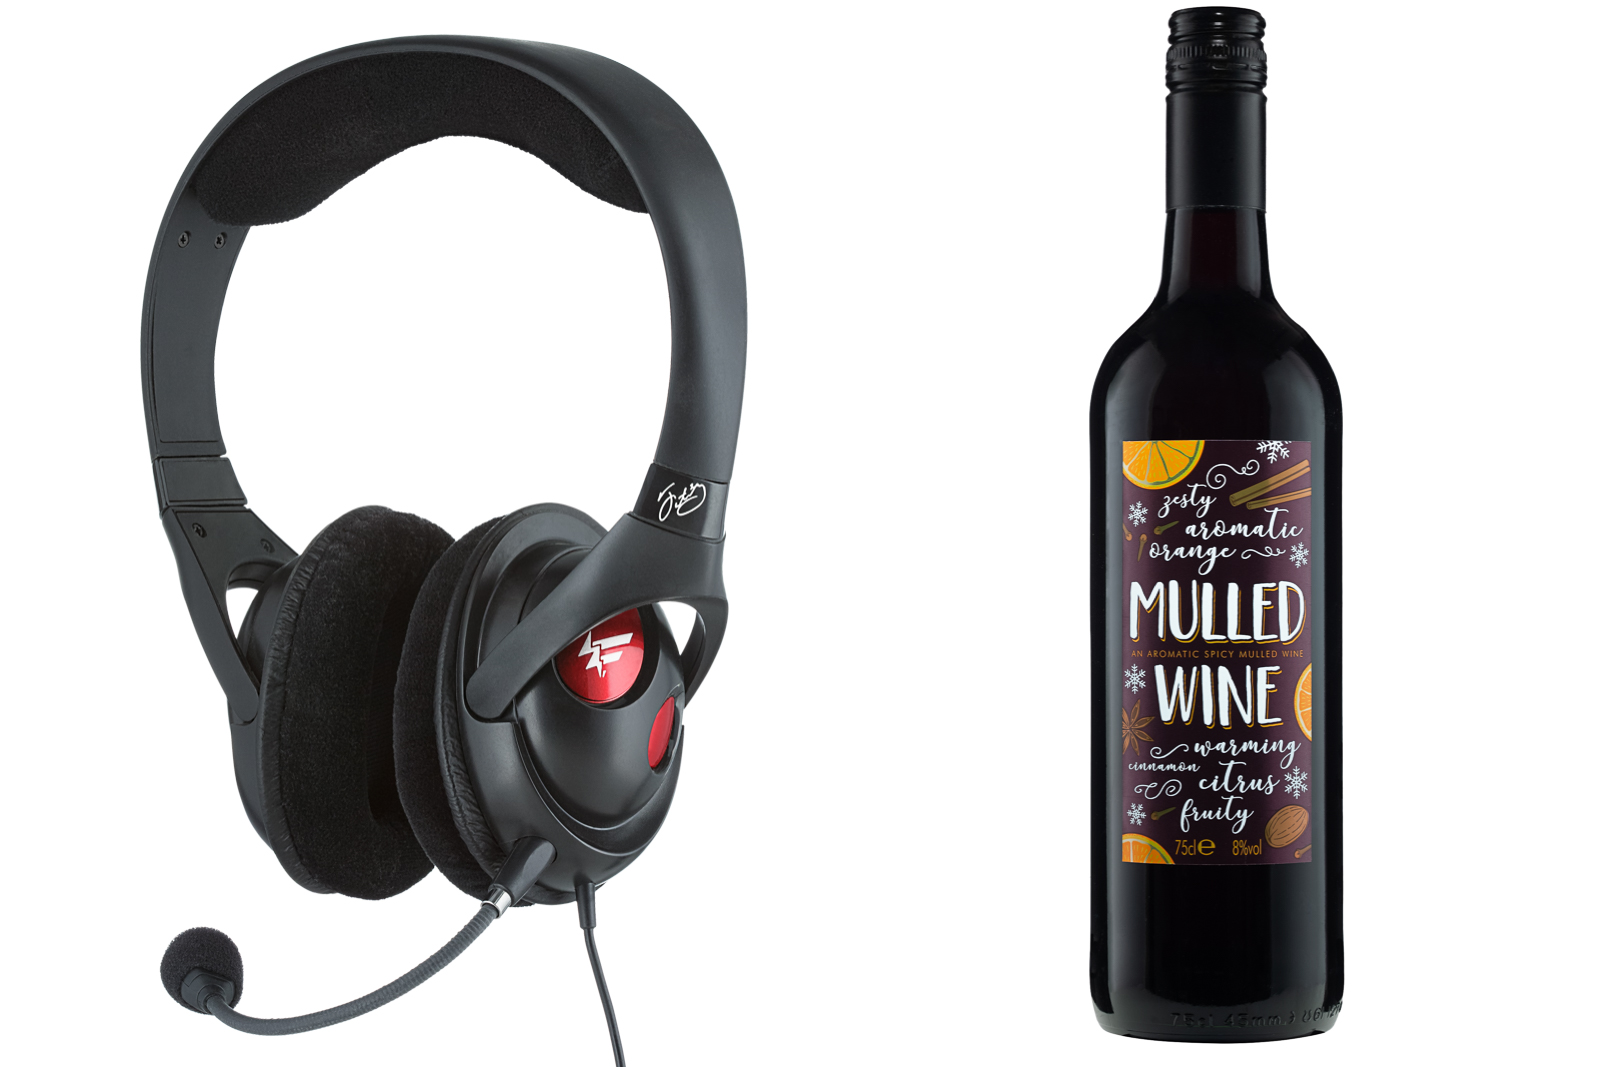 music headphones and mulled wine on white background